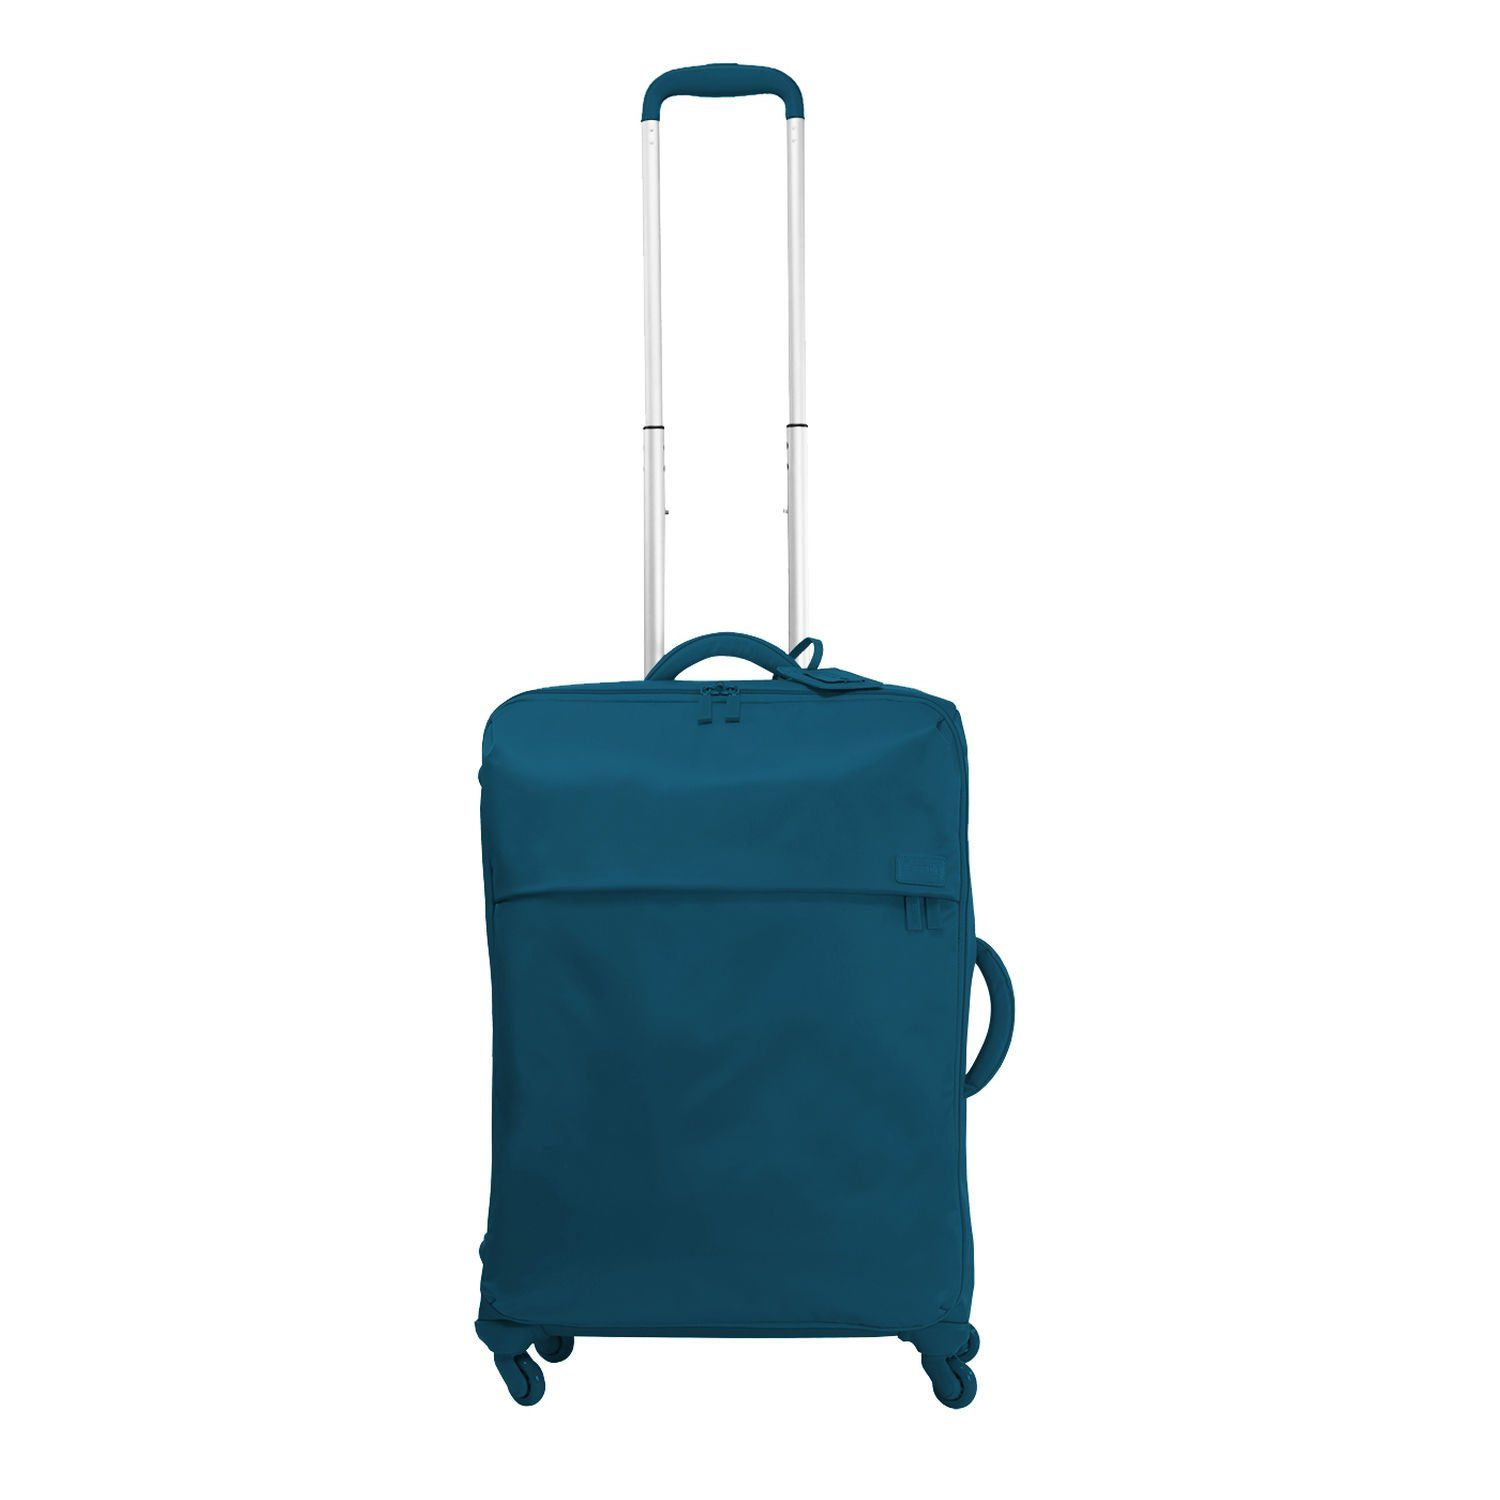 Lipault Original Plume 65/24 Suitcases (One Size, Duck Blue)